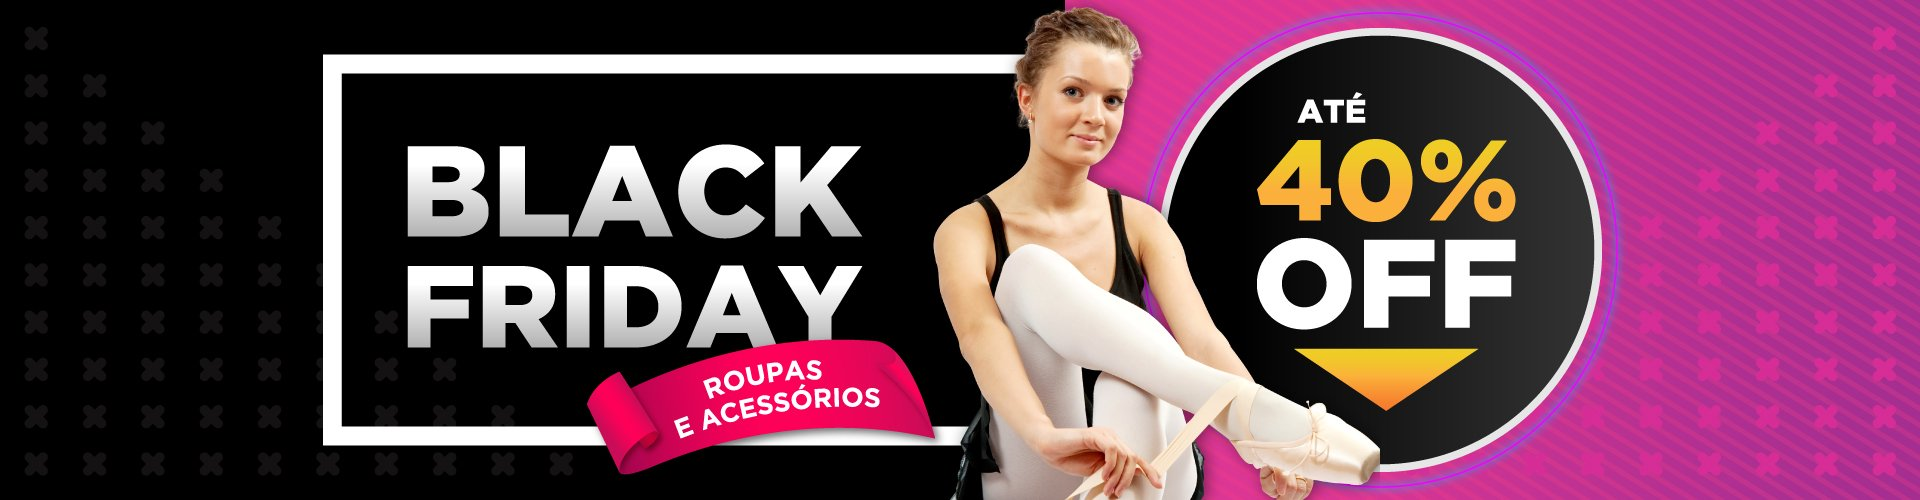 Ballet Black Friday